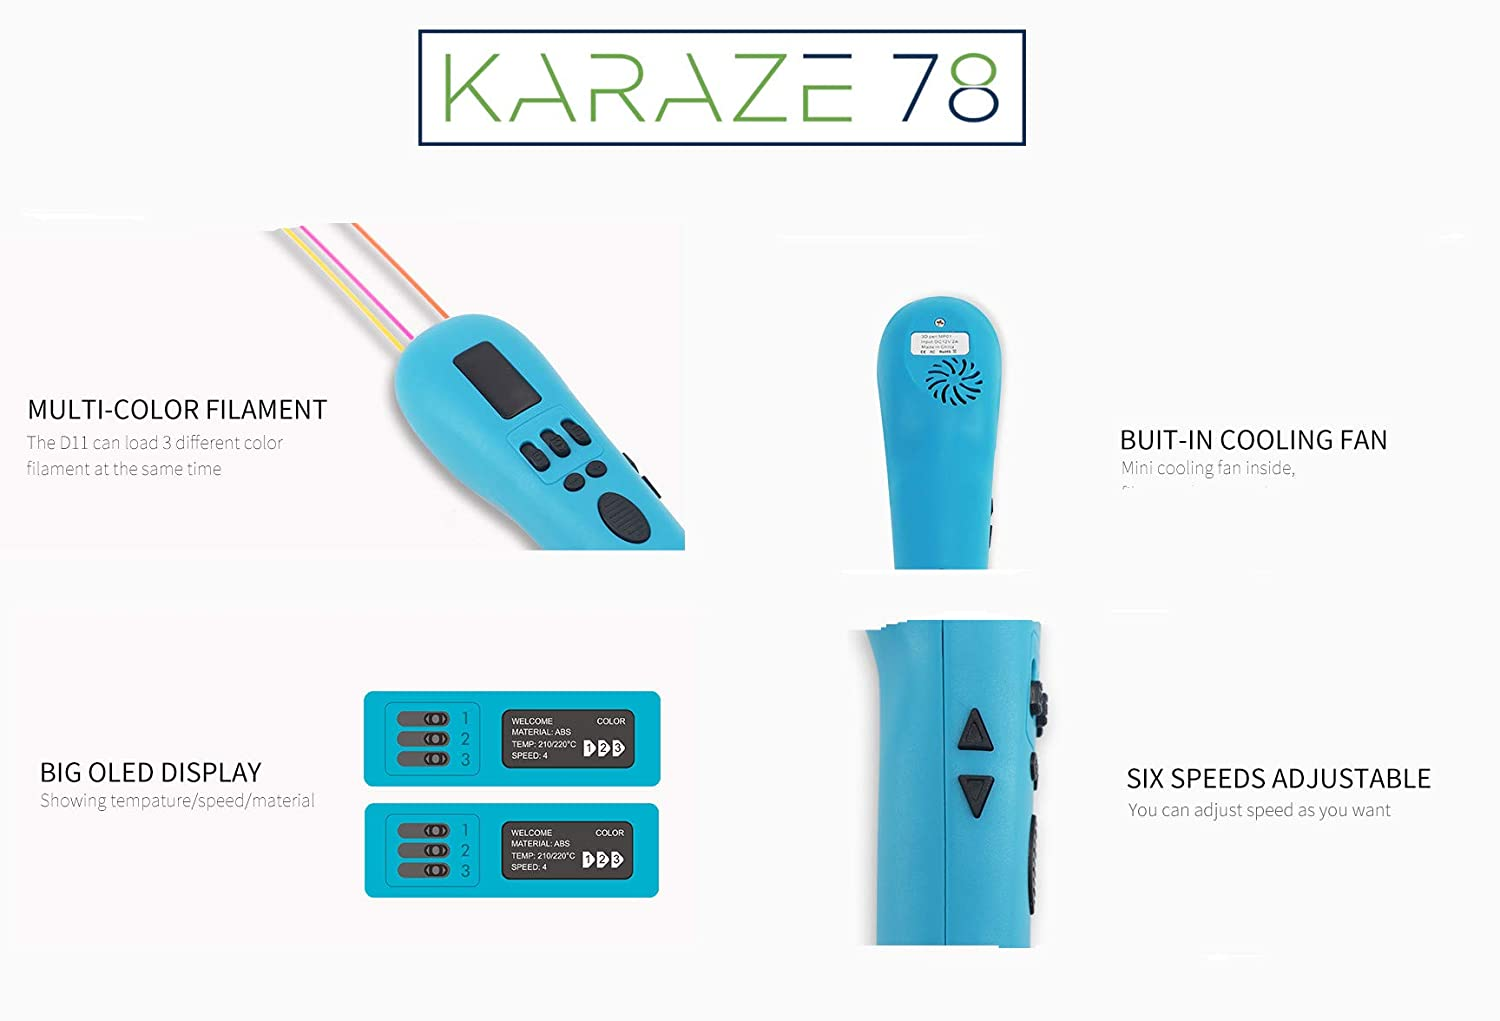 Compatible with PLA ABS Mode 3 Colors Filament at The Same time with 1-Second Switch Between Colors 3D Pen from Karaze 78 White Dewang 3D Printing Pen with OLED Screen